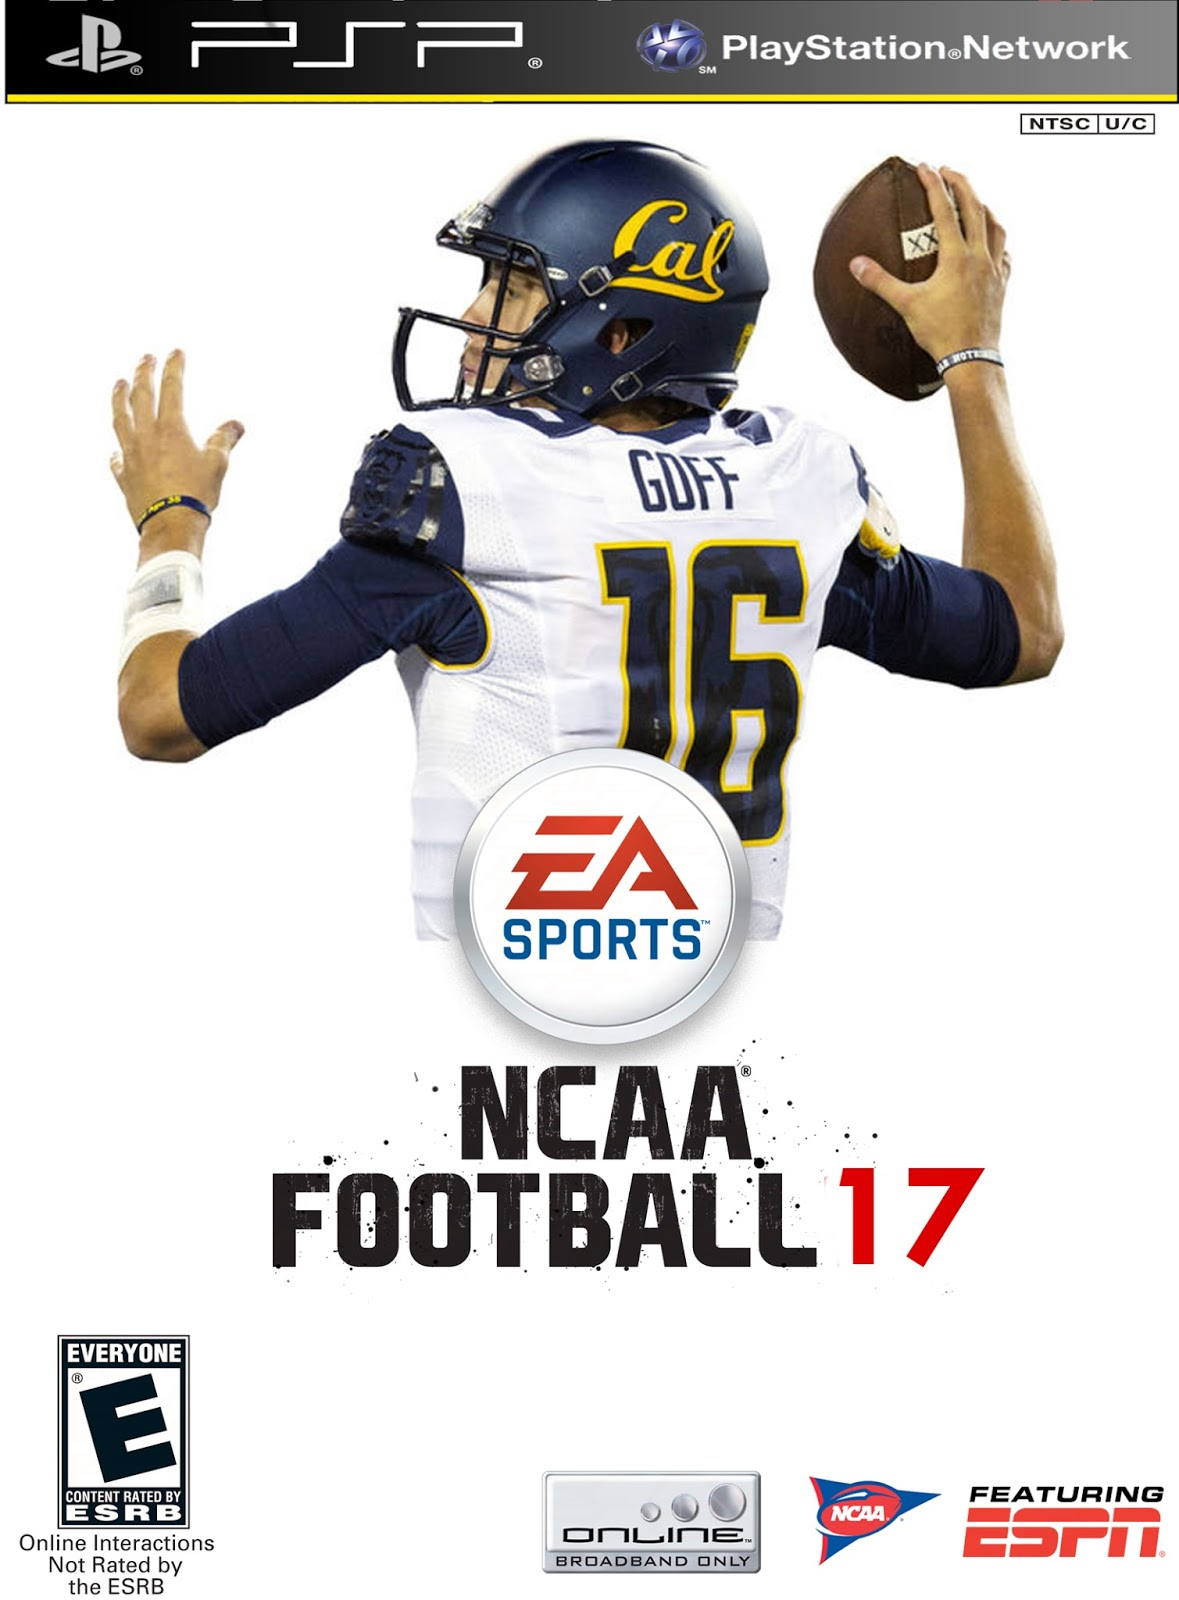 NCAA Football 2016-17 for Playstation 2 and PSP now available!!